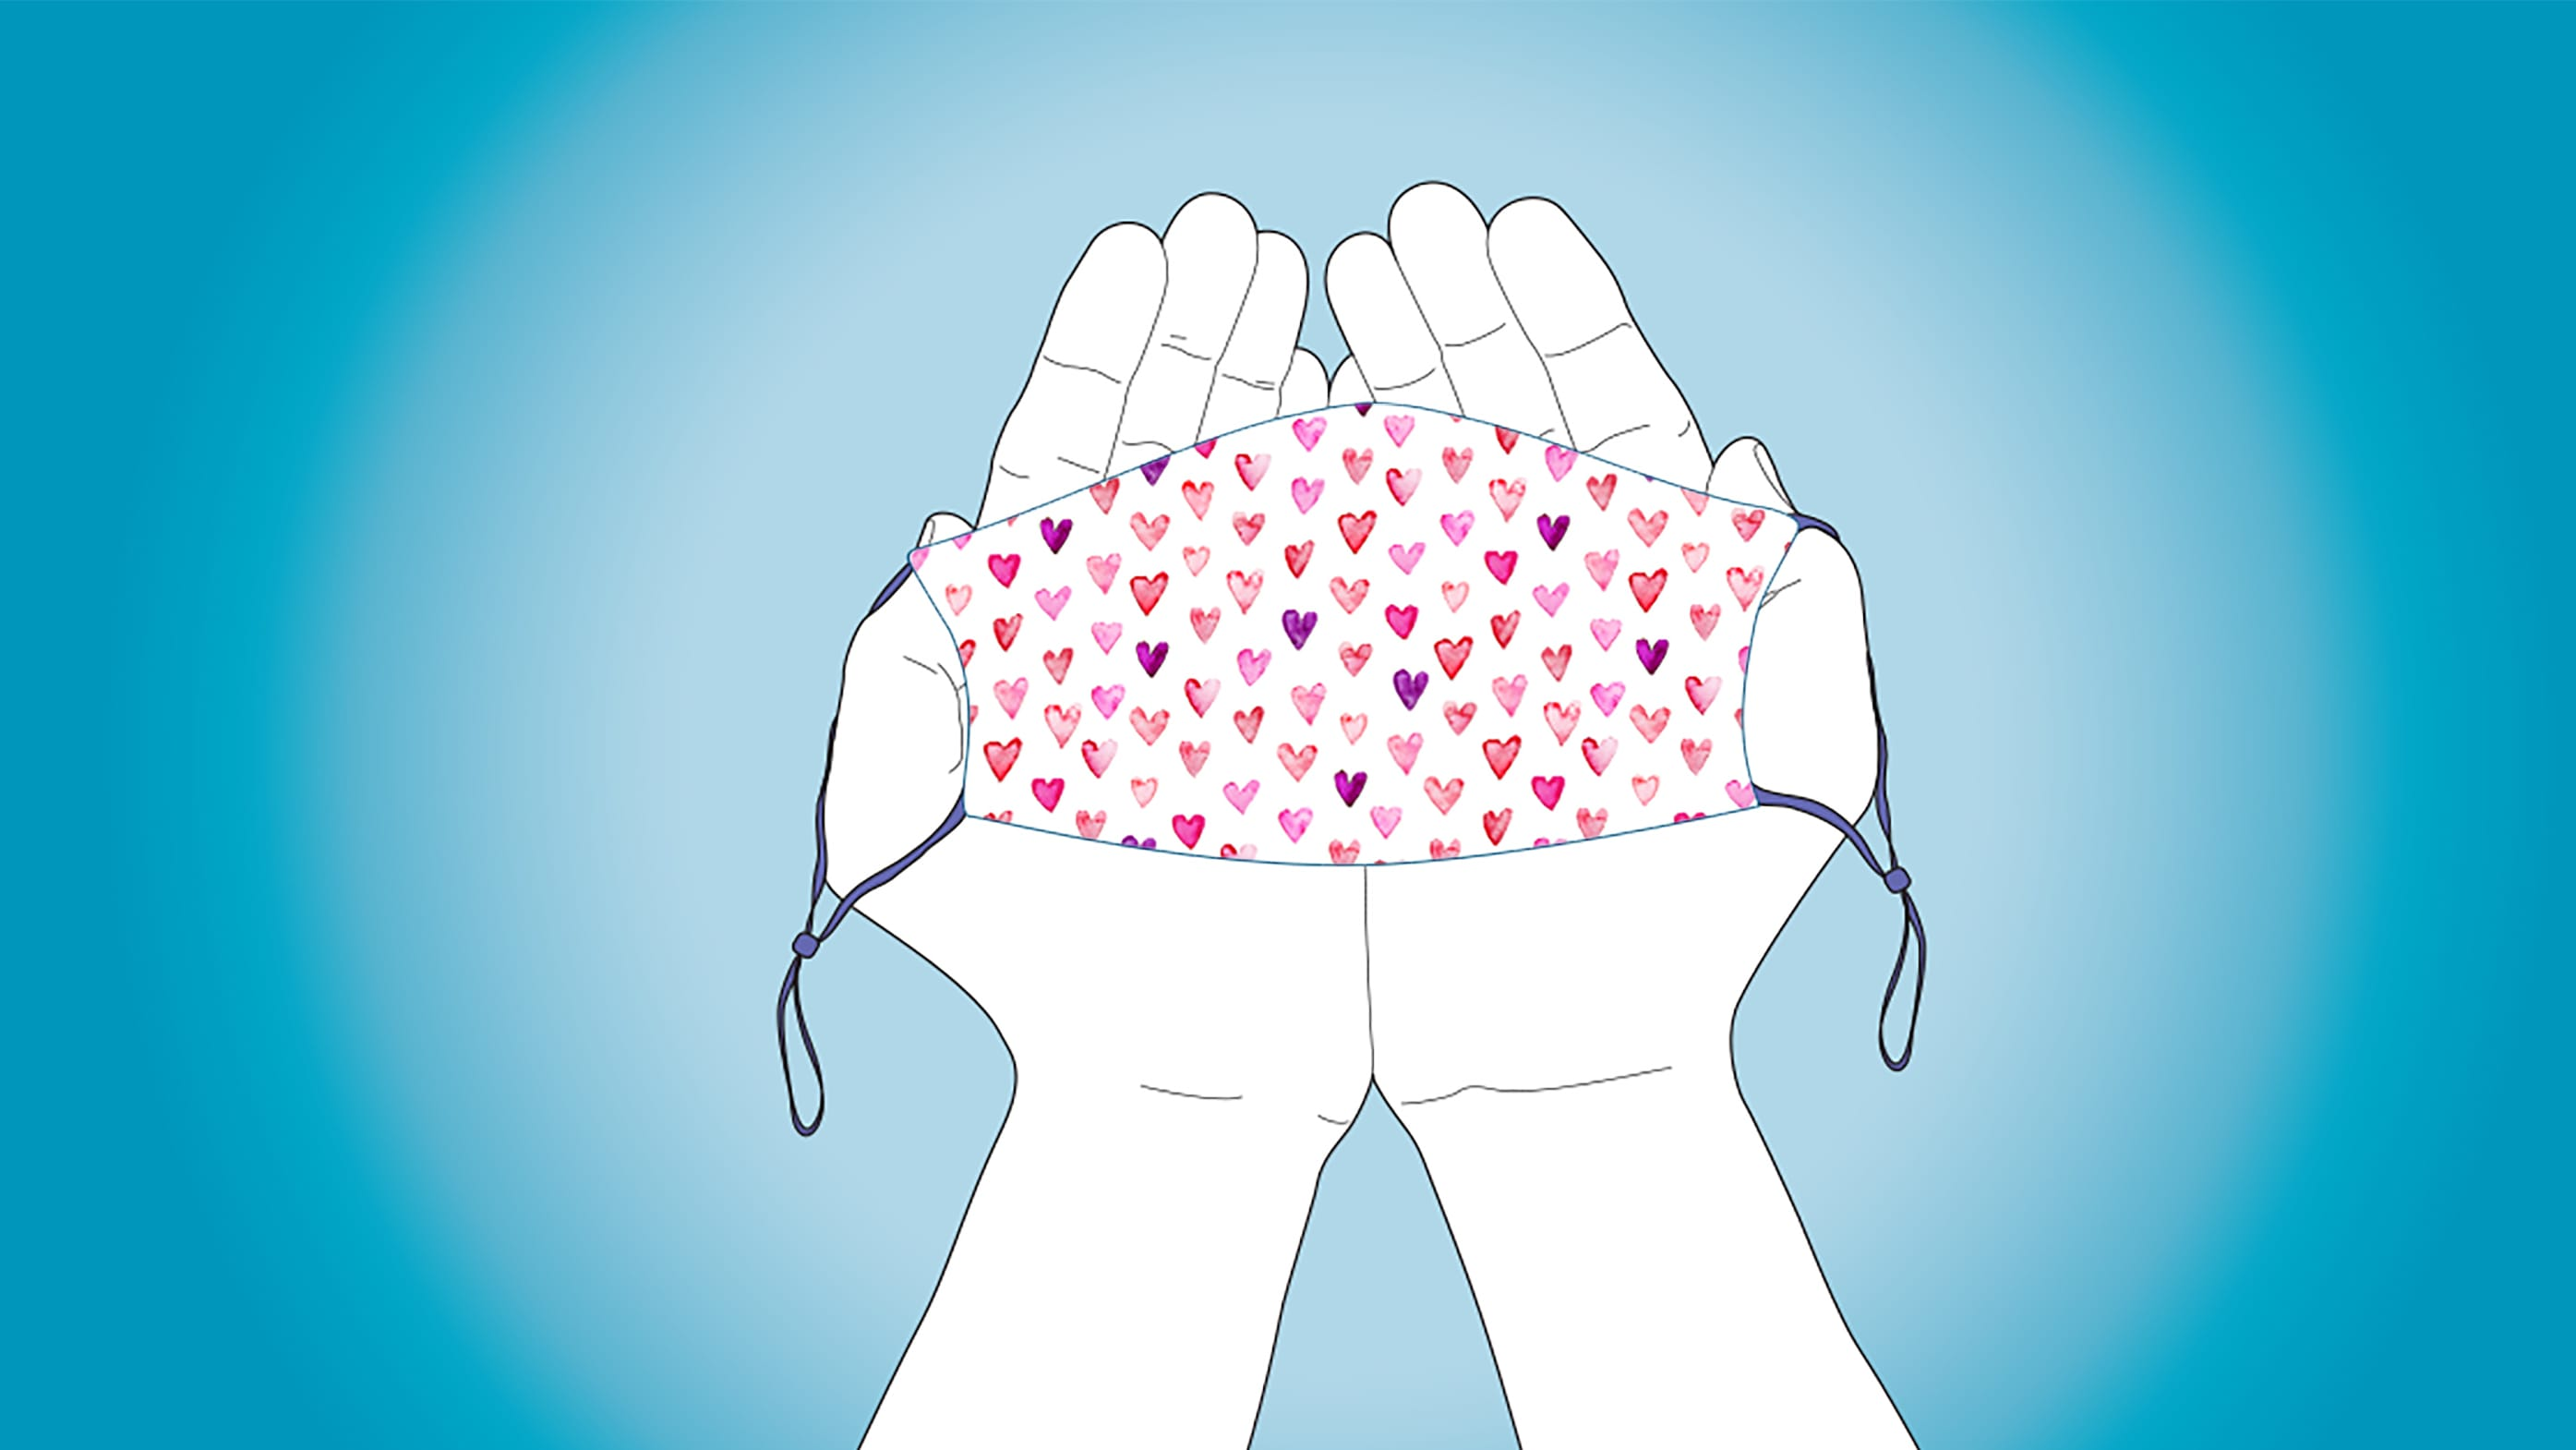 illustration of hands holding a mask with a heart pattern on it